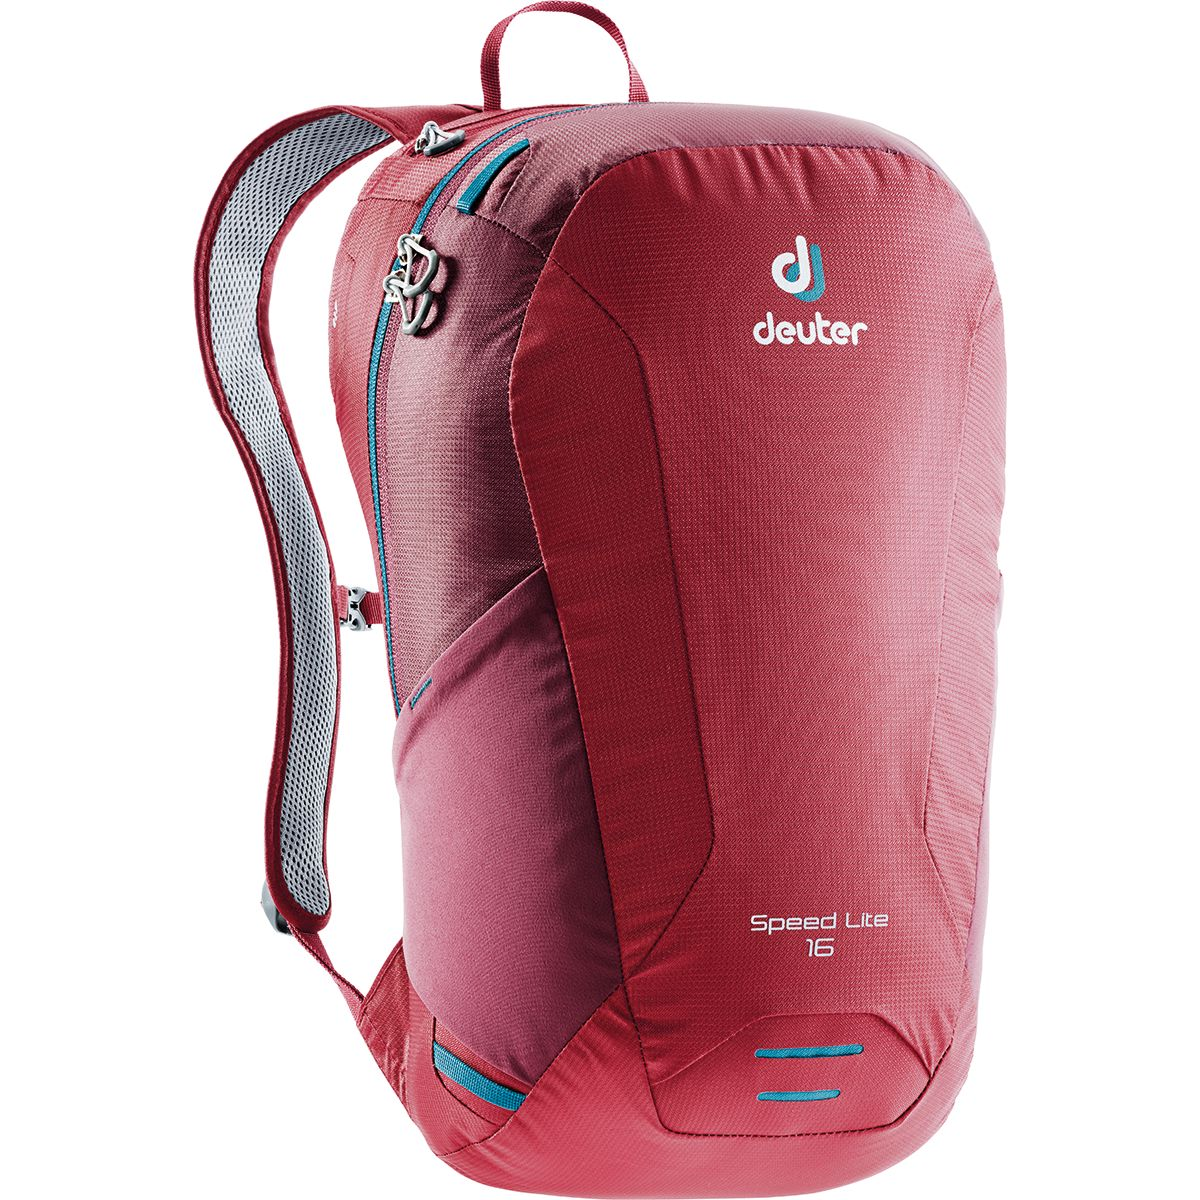 Image of Deuter Speed Lite 16 Rucksack (Rot)